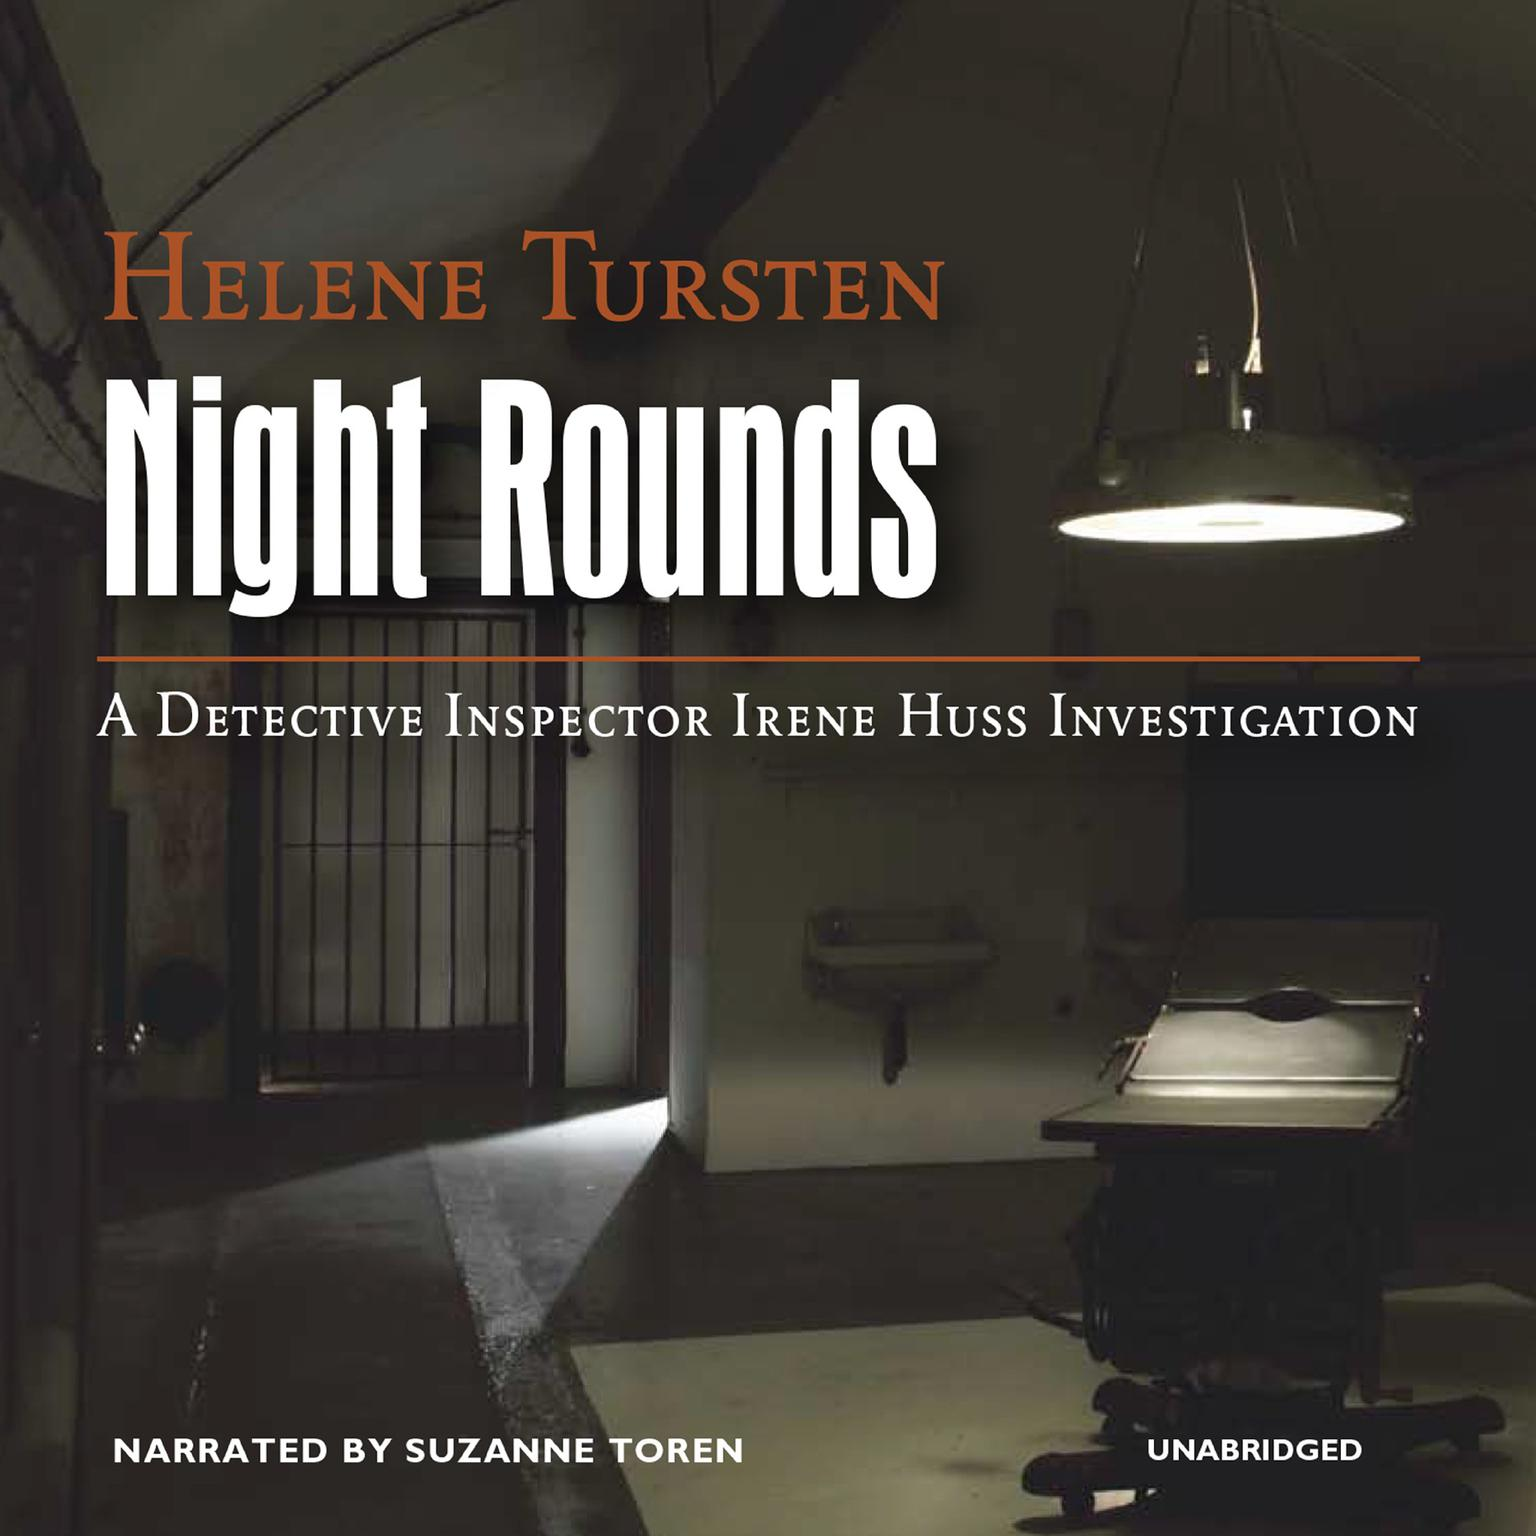 Printable Night Rounds Audiobook Cover Art